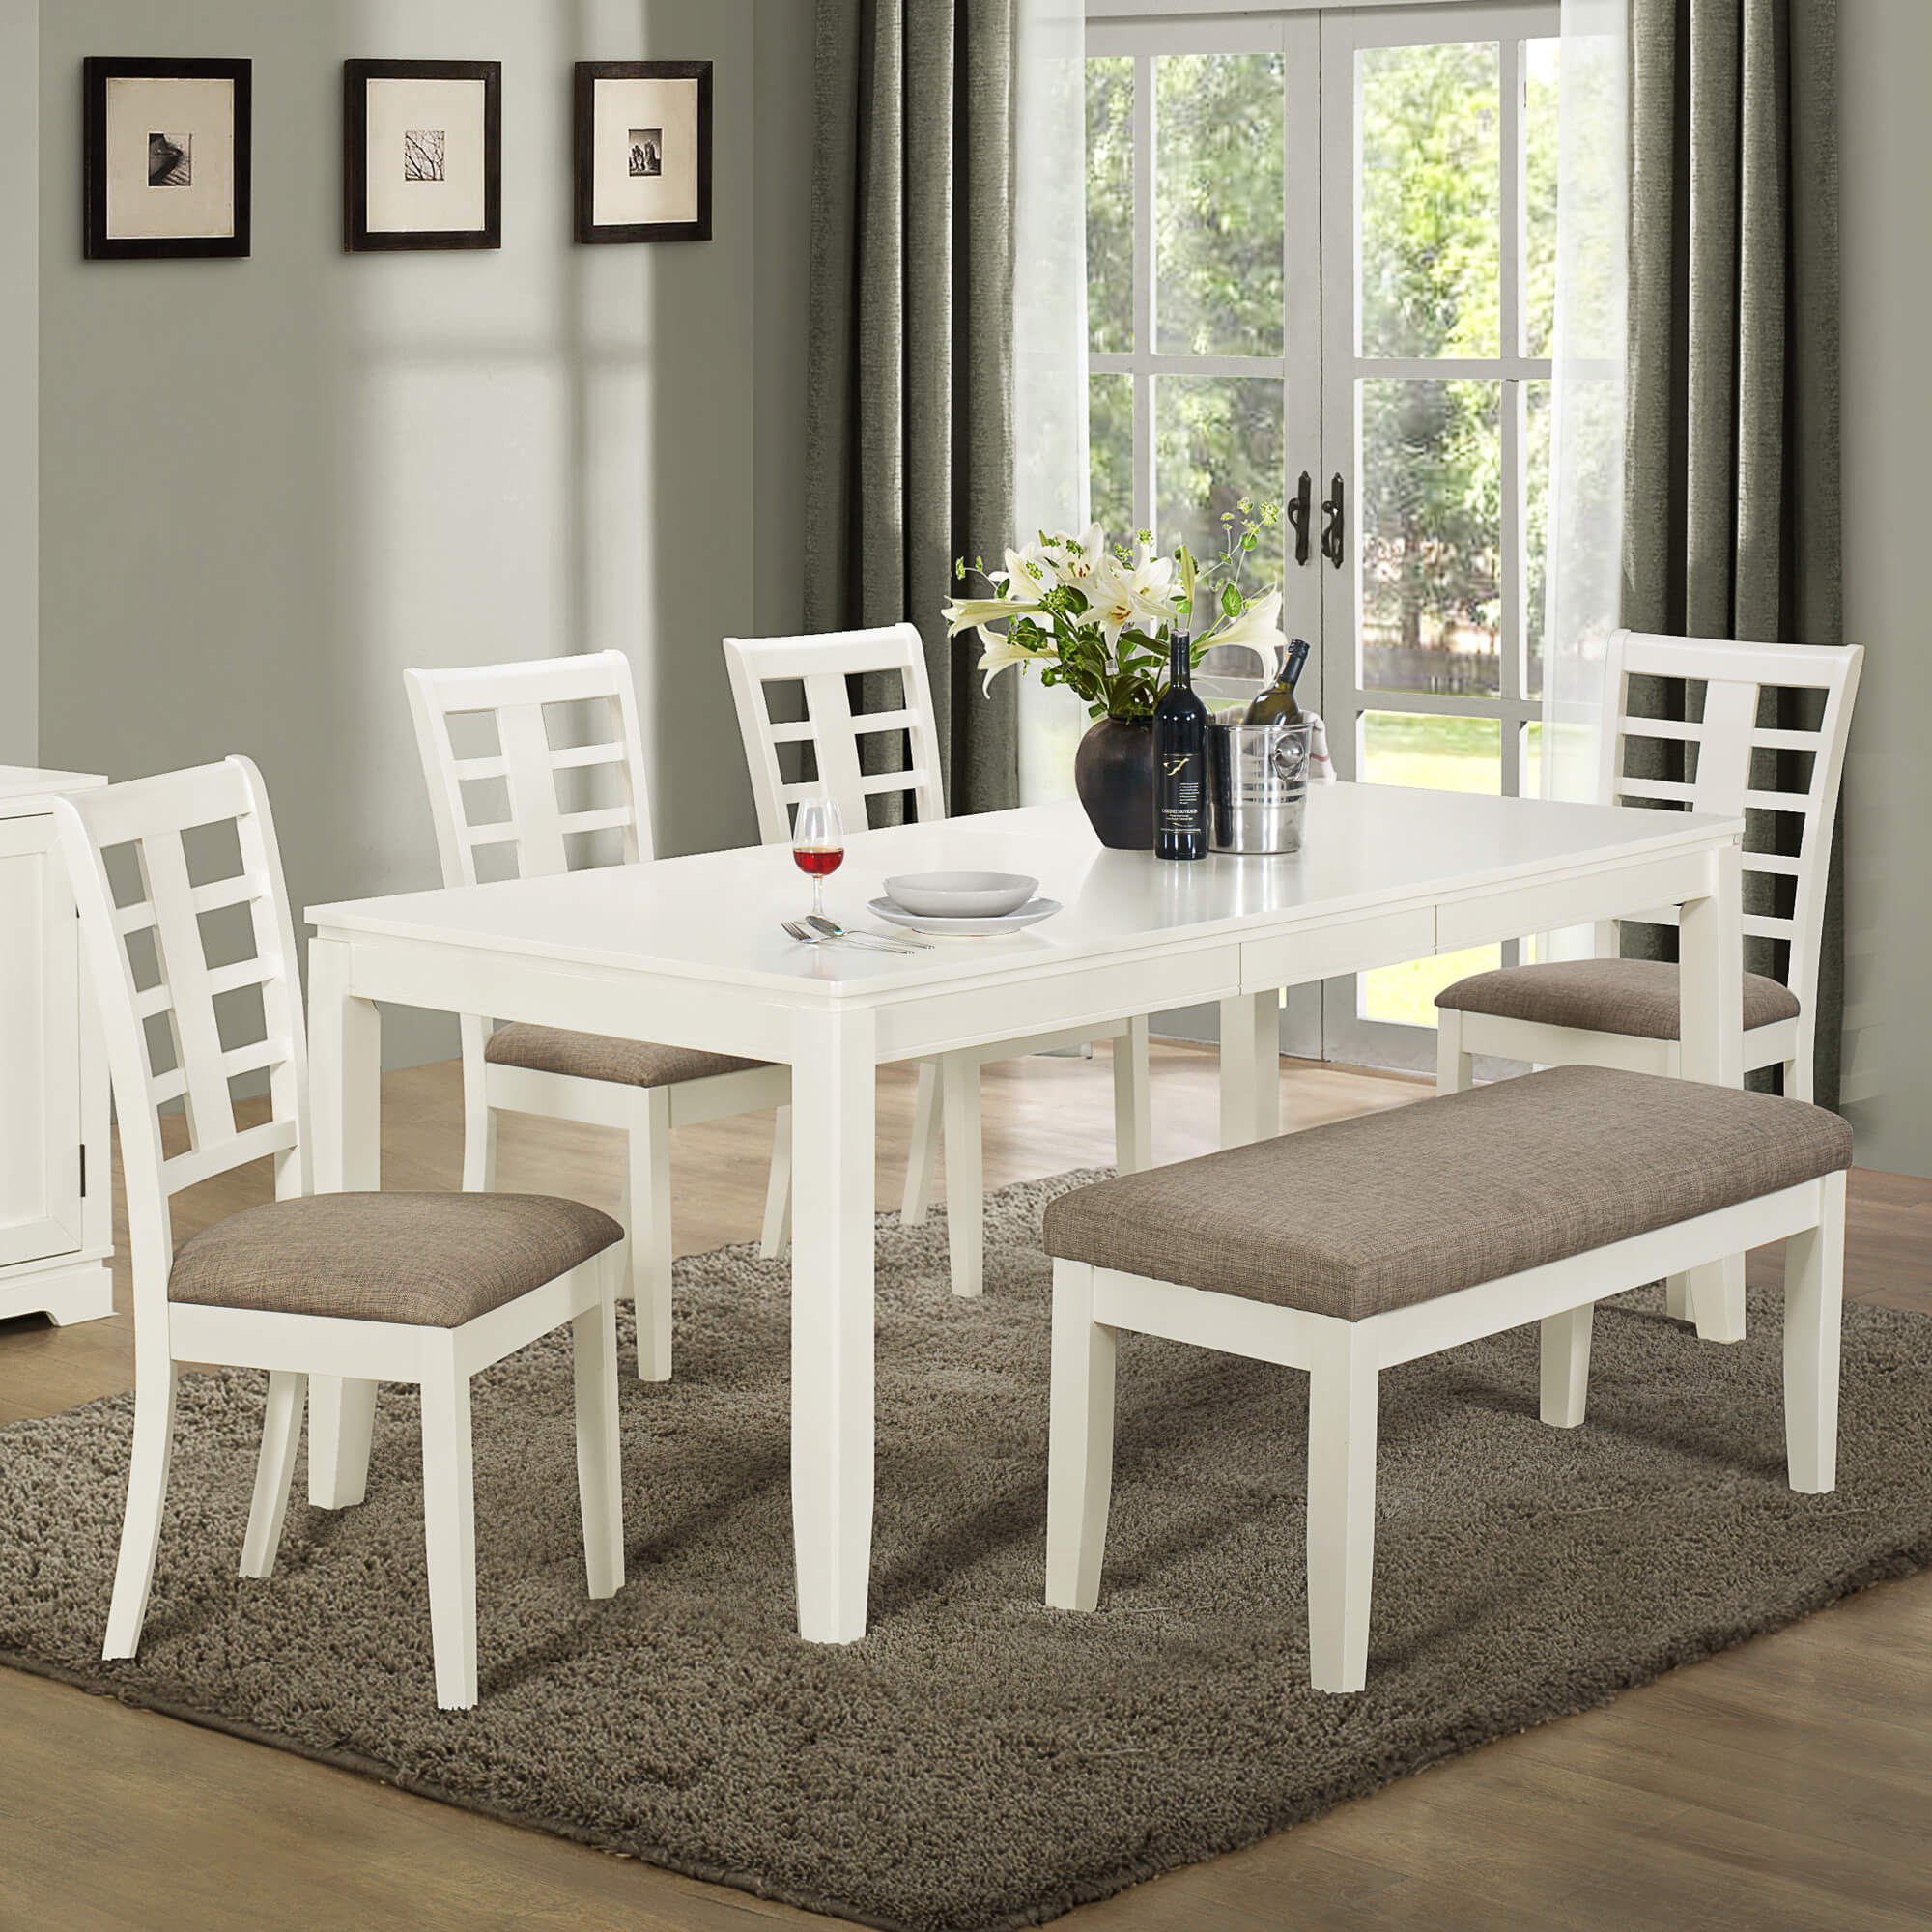 dining room sets bench seating gray kitchen table Built with solid wood and MDF board this white and grey dining set with bench